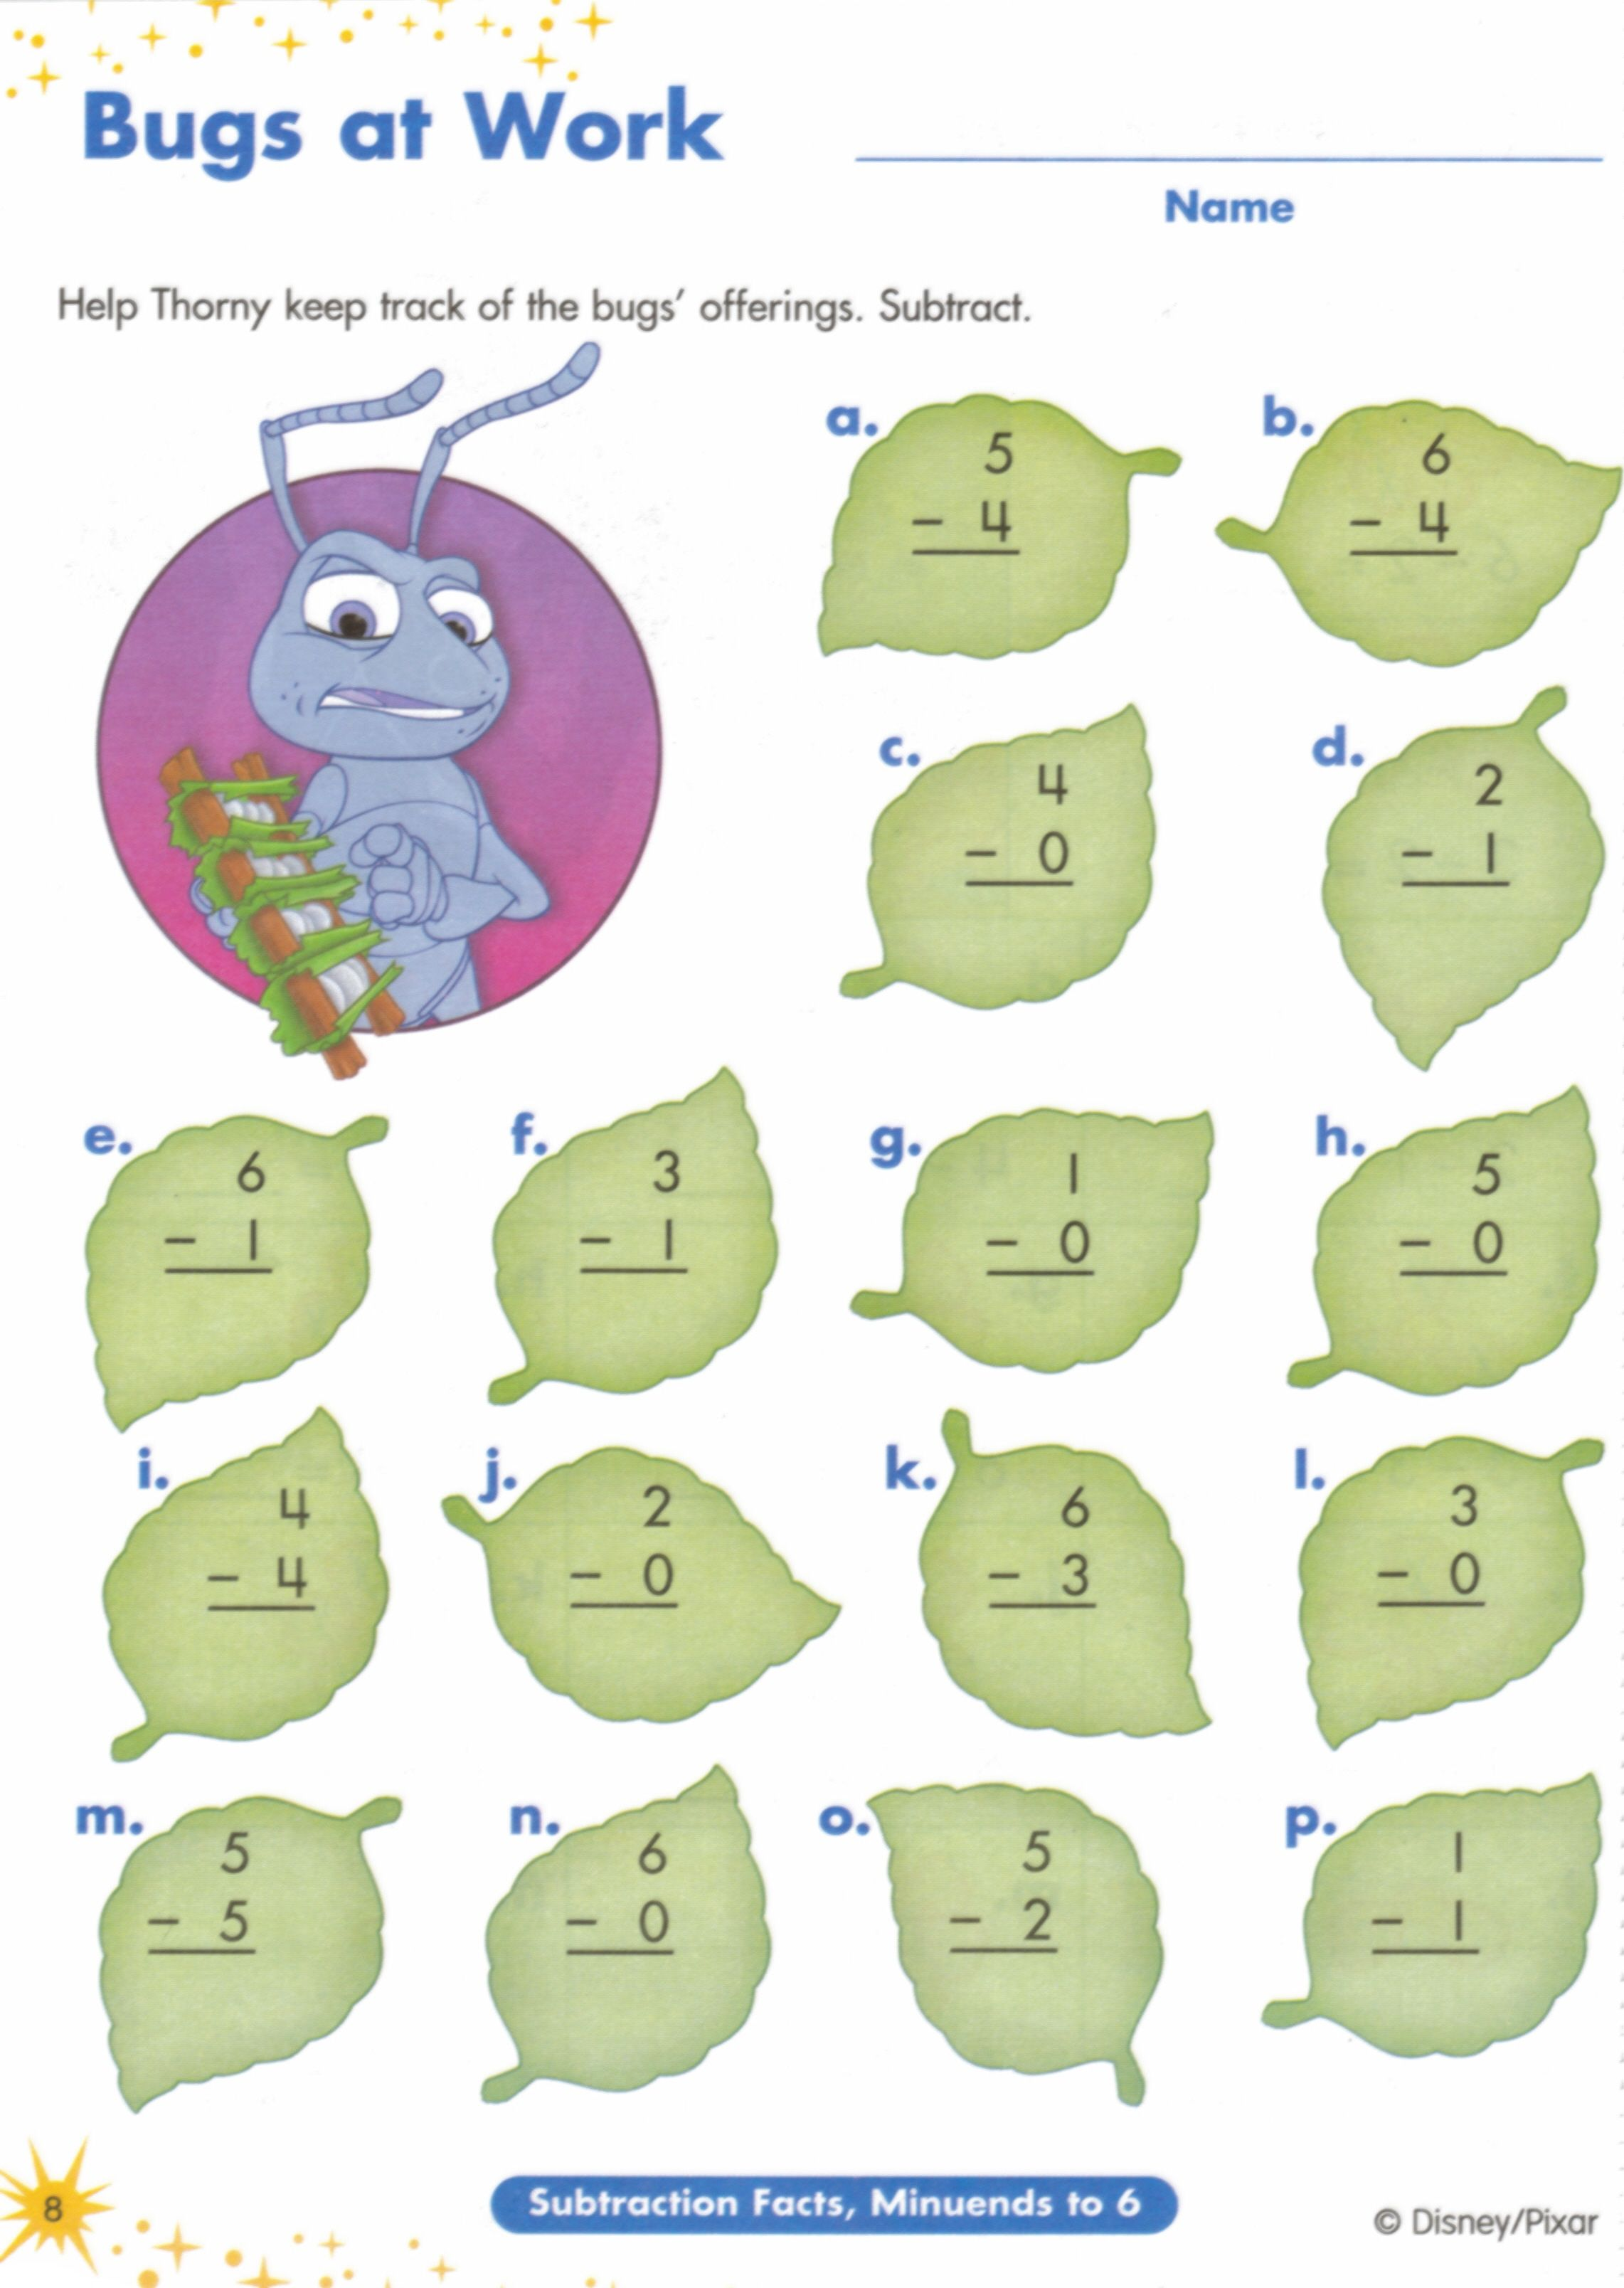 Proatmealus  Gorgeous  Images About Worksheets On Pinterest  Fun Facts For Kids  With Foxy  Images About Worksheets On Pinterest  Fun Facts For Kids Earth Day Worksheets And Jungles With Alluring  Letter Blend Worksheets Also Order Of Operations Worksheet Grade  In Addition Hcf Lcm Worksheet And Worksheet On Preposition As Well As Opposites Worksheets For Grade  Additionally Human Body Organs Worksheet From Pinterestcom With Proatmealus  Foxy  Images About Worksheets On Pinterest  Fun Facts For Kids  With Alluring  Images About Worksheets On Pinterest  Fun Facts For Kids Earth Day Worksheets And Jungles And Gorgeous  Letter Blend Worksheets Also Order Of Operations Worksheet Grade  In Addition Hcf Lcm Worksheet From Pinterestcom